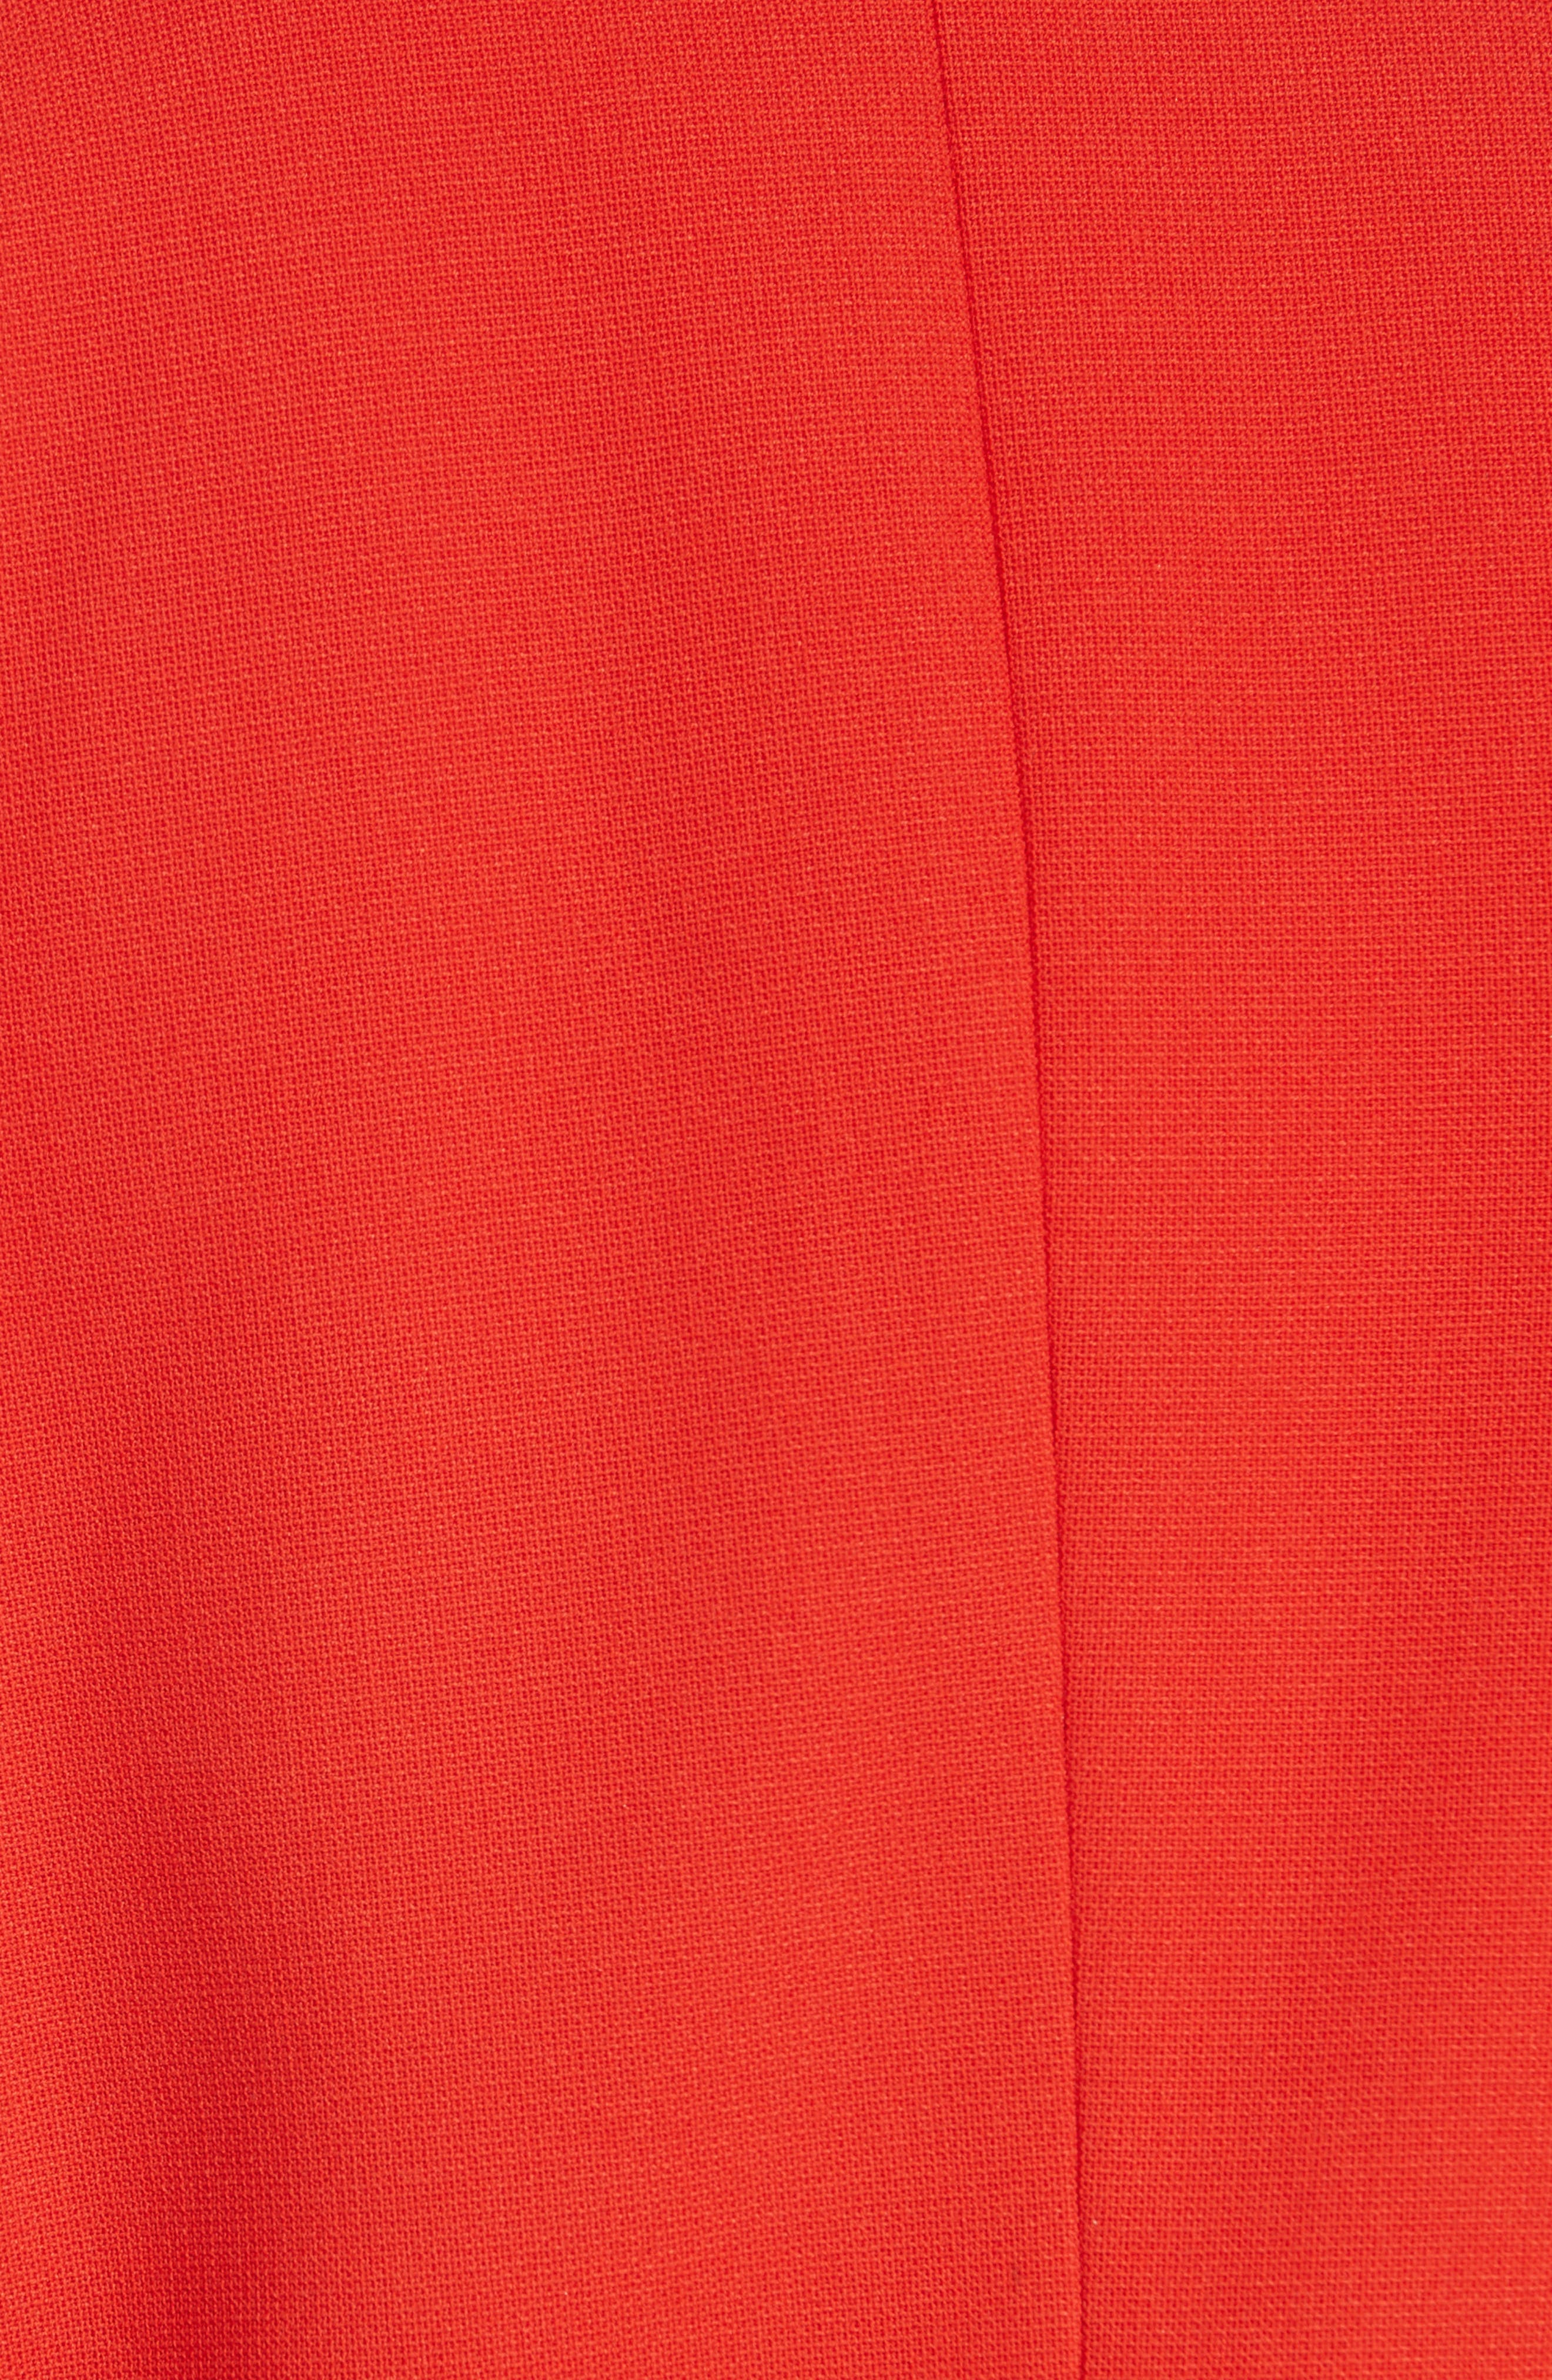 Miller Dickey Jacket,                             Alternate thumbnail 6, color,                             RED